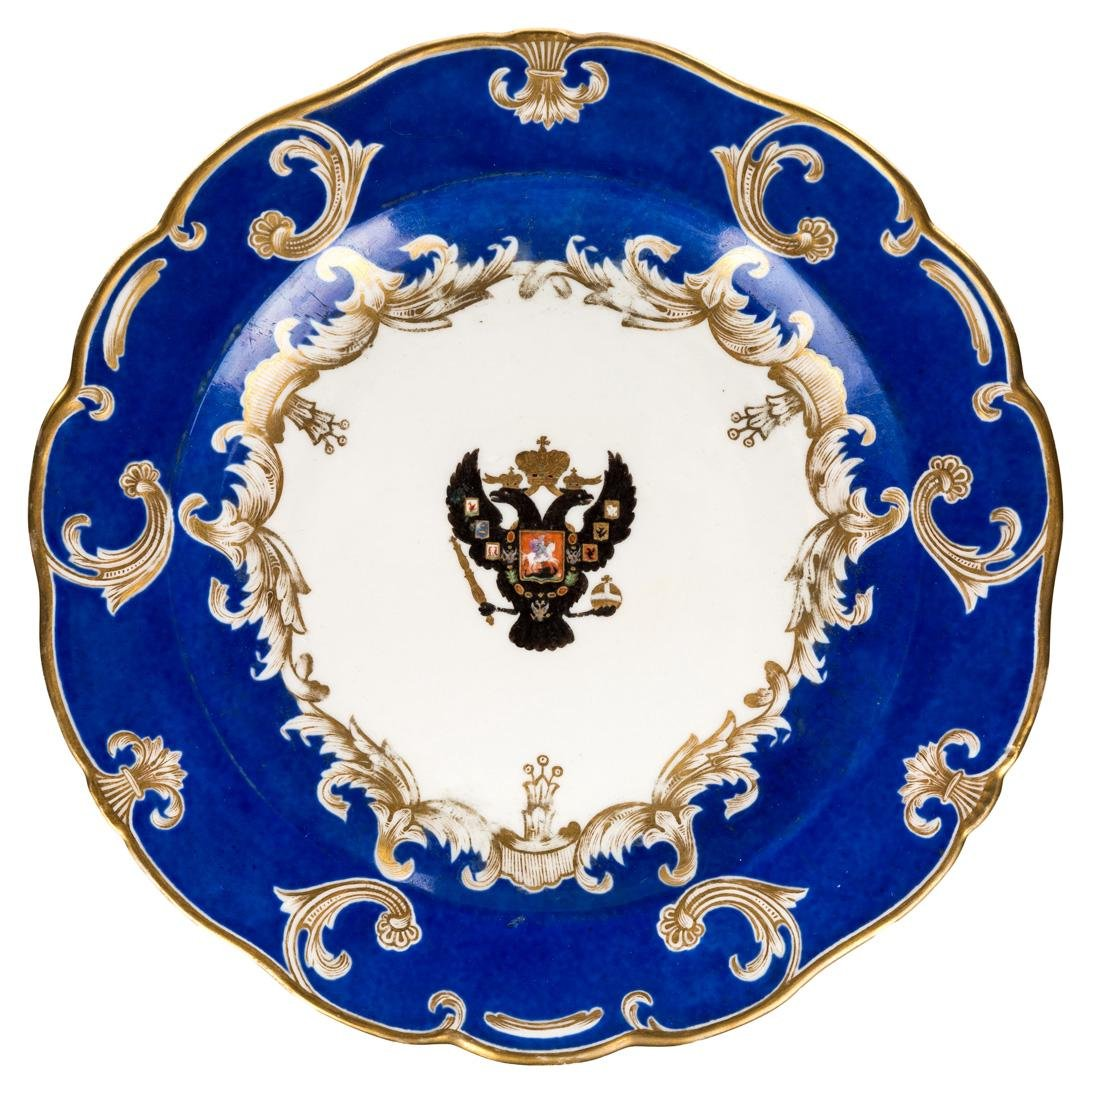 A RUSSIAN IMPERIAL PORCELAIN PLATE, IMPERIAL PORCELAIN